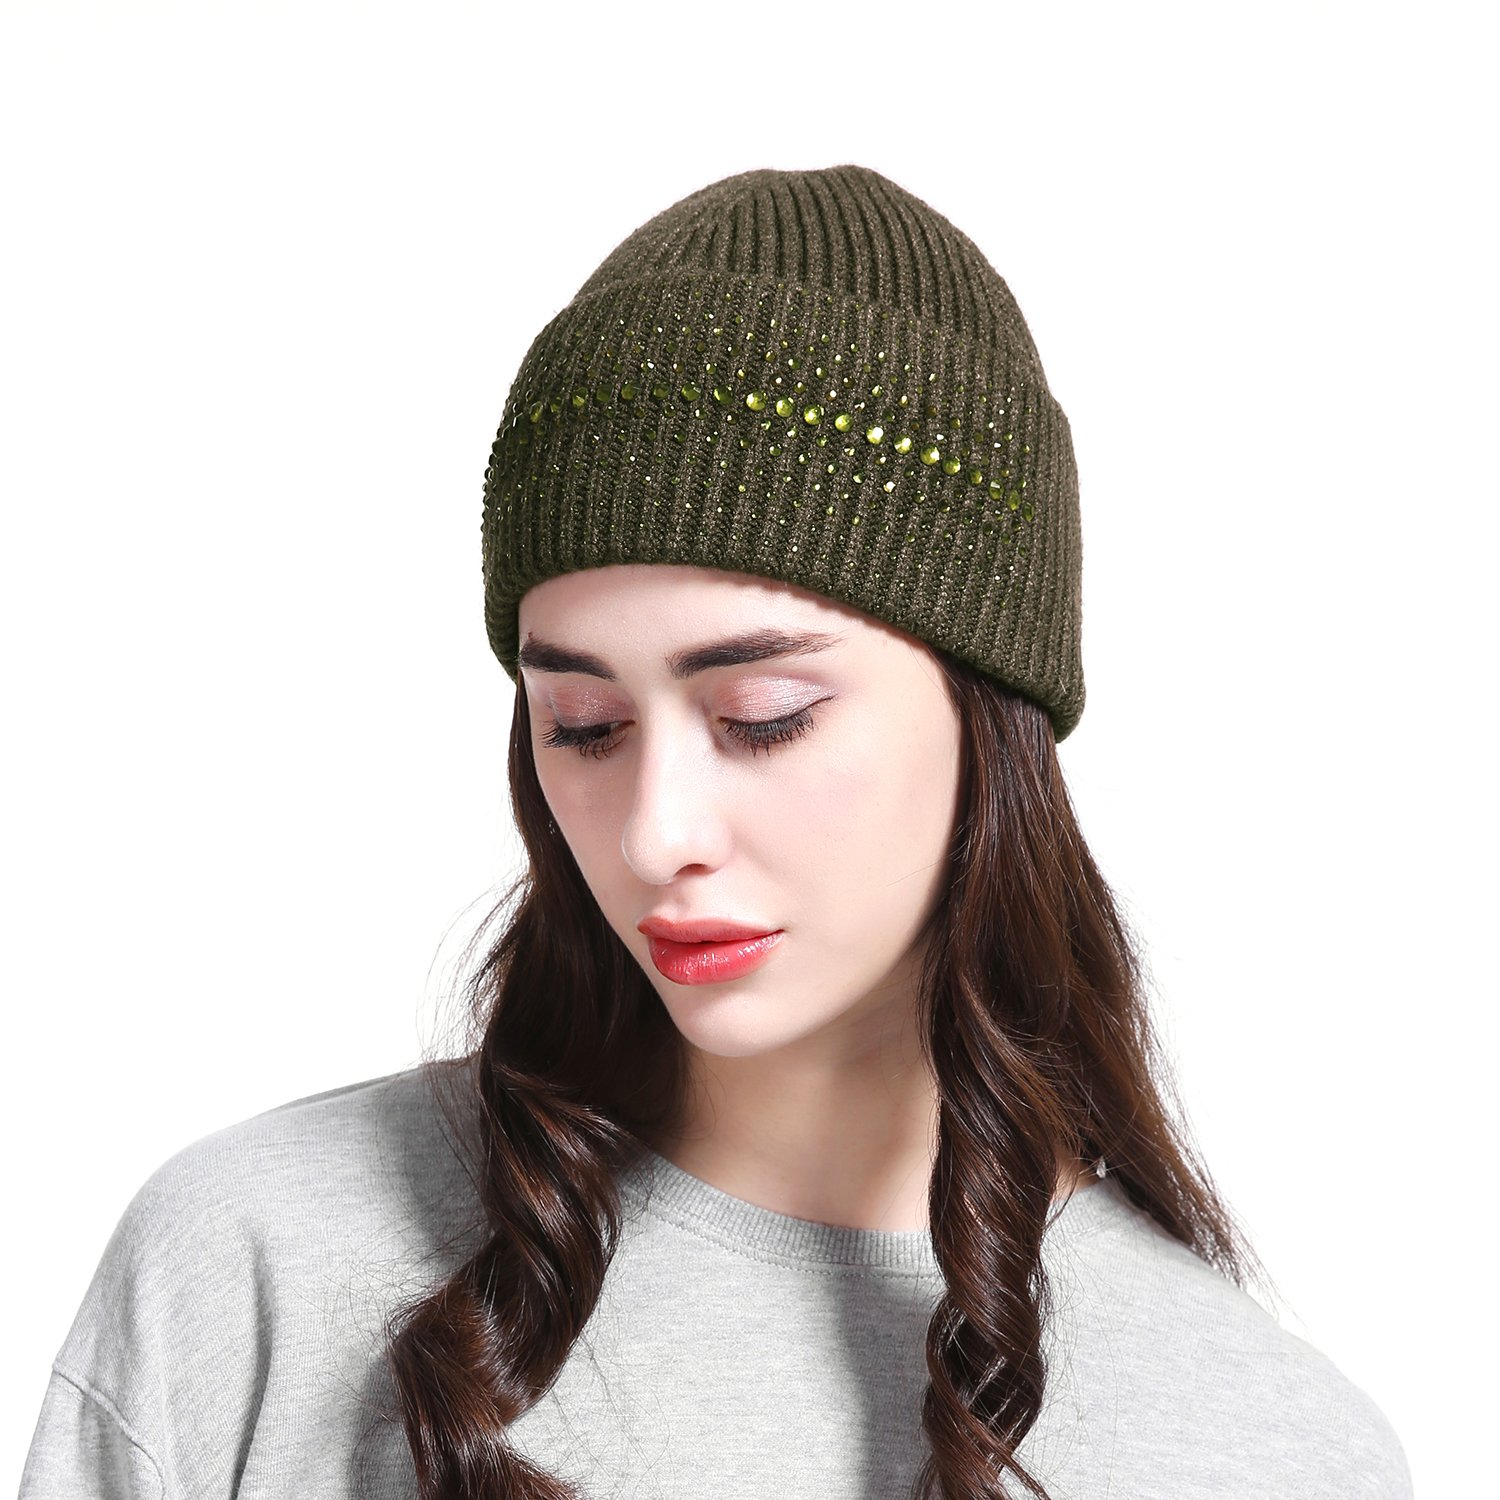 81a527b19ec JOOWEN Women s Wool Knit Fold Over Beanie Embellished with Rhinestones  Winter Hat (Black) at Amazon Women s Clothing store